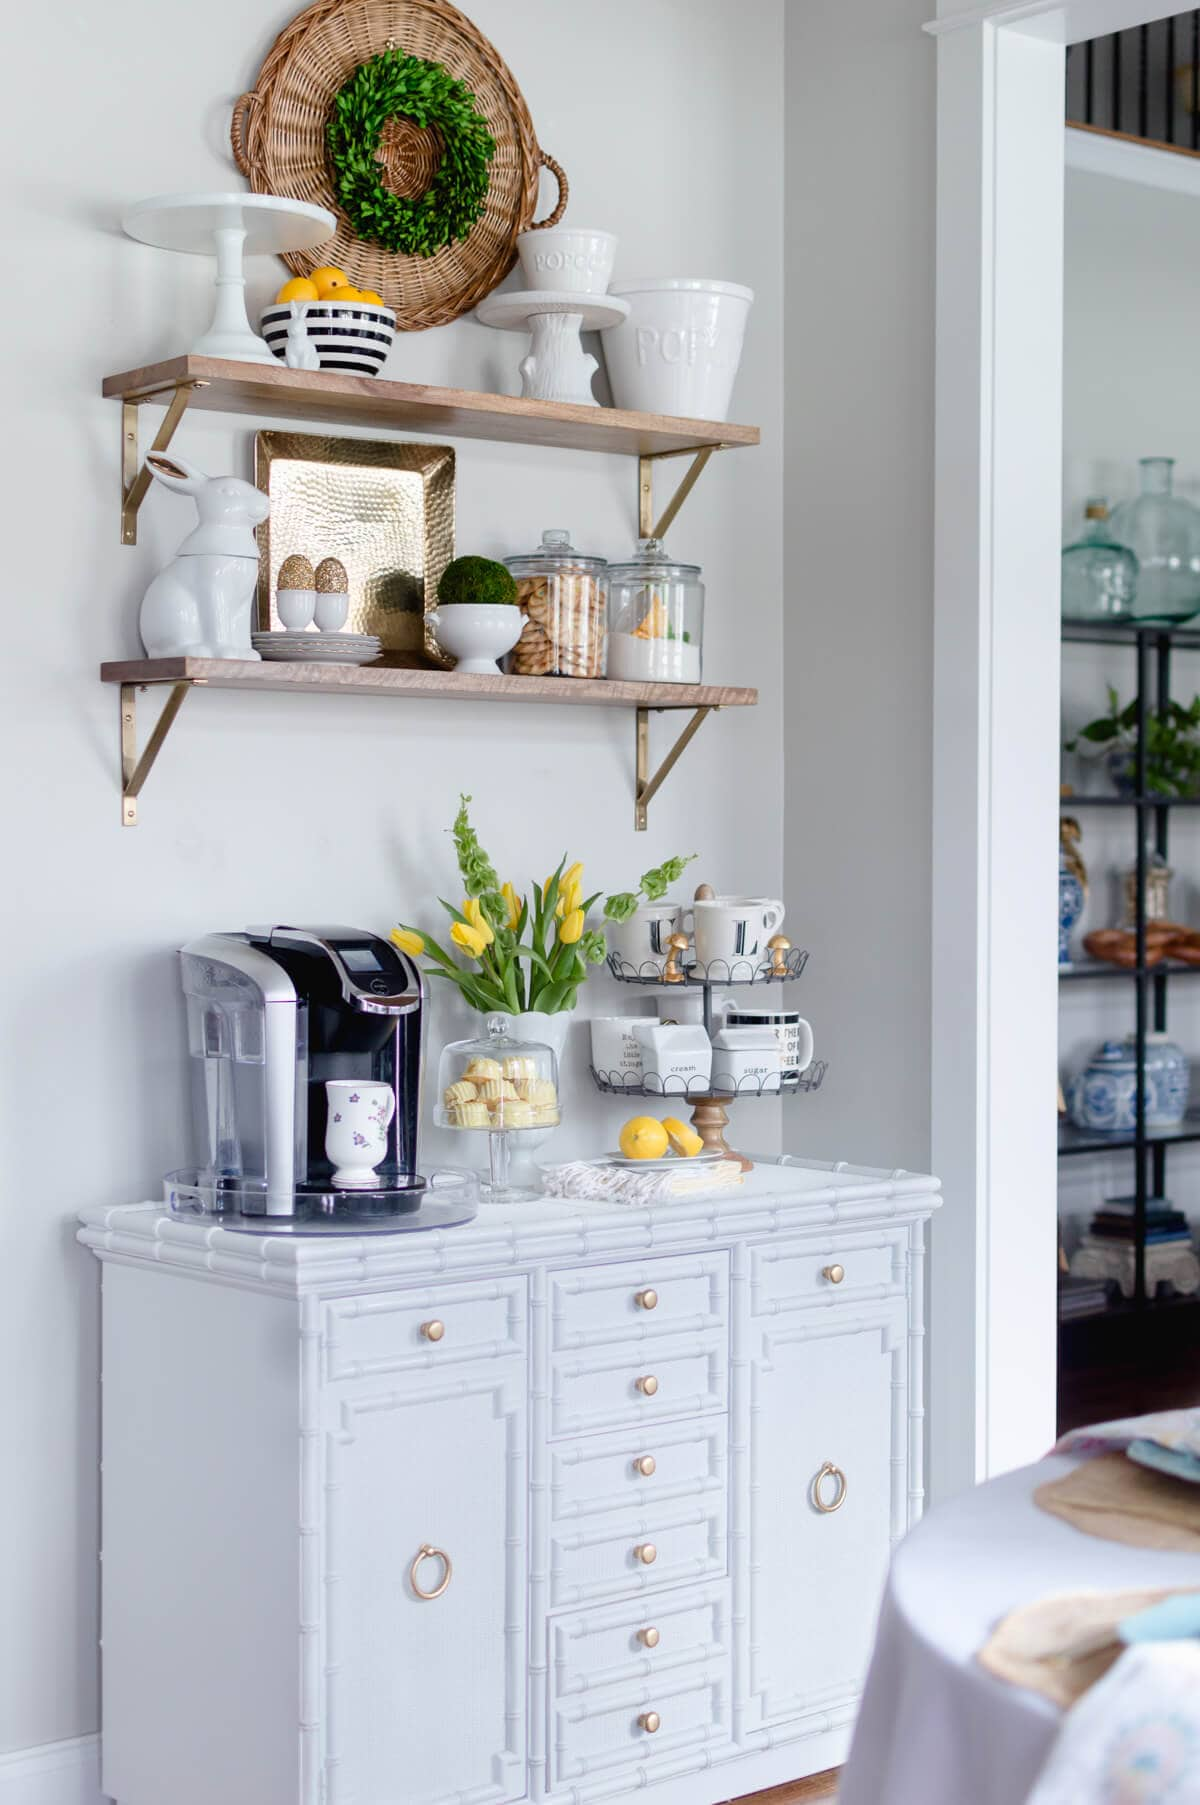 Coffee Bar Decor Updated For Spring - The Home I Create